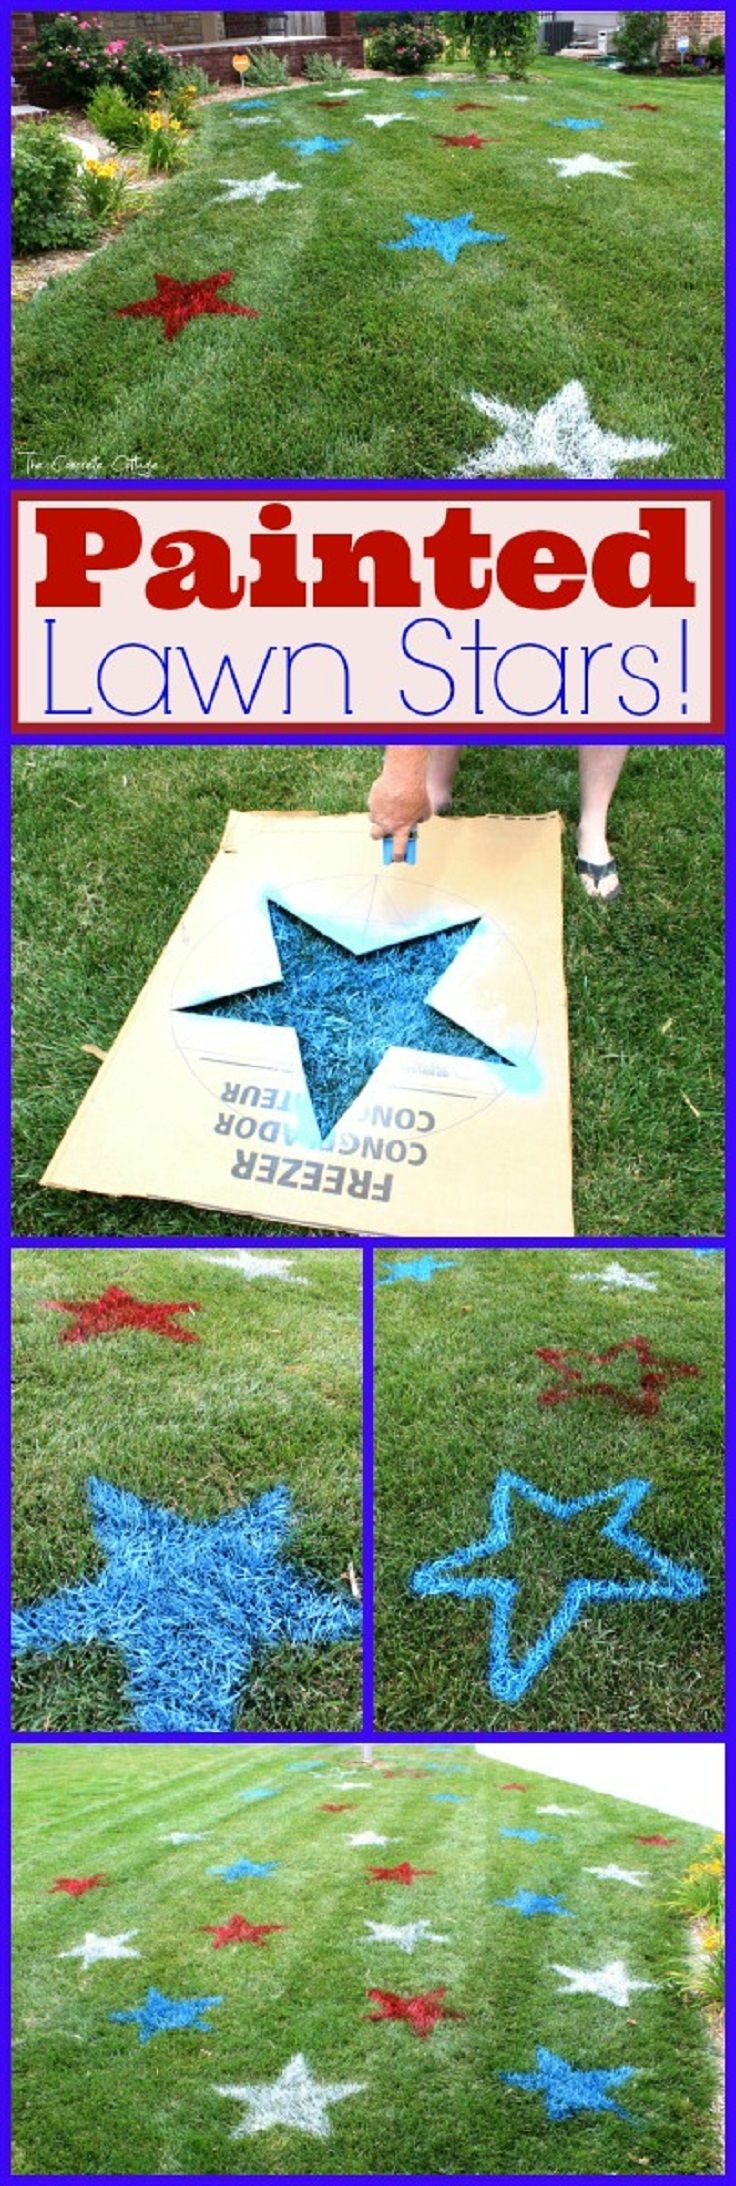 Decorative Stars For Parties 17 Best Ideas About Patriotic Party On Pinterest July 4th 4th